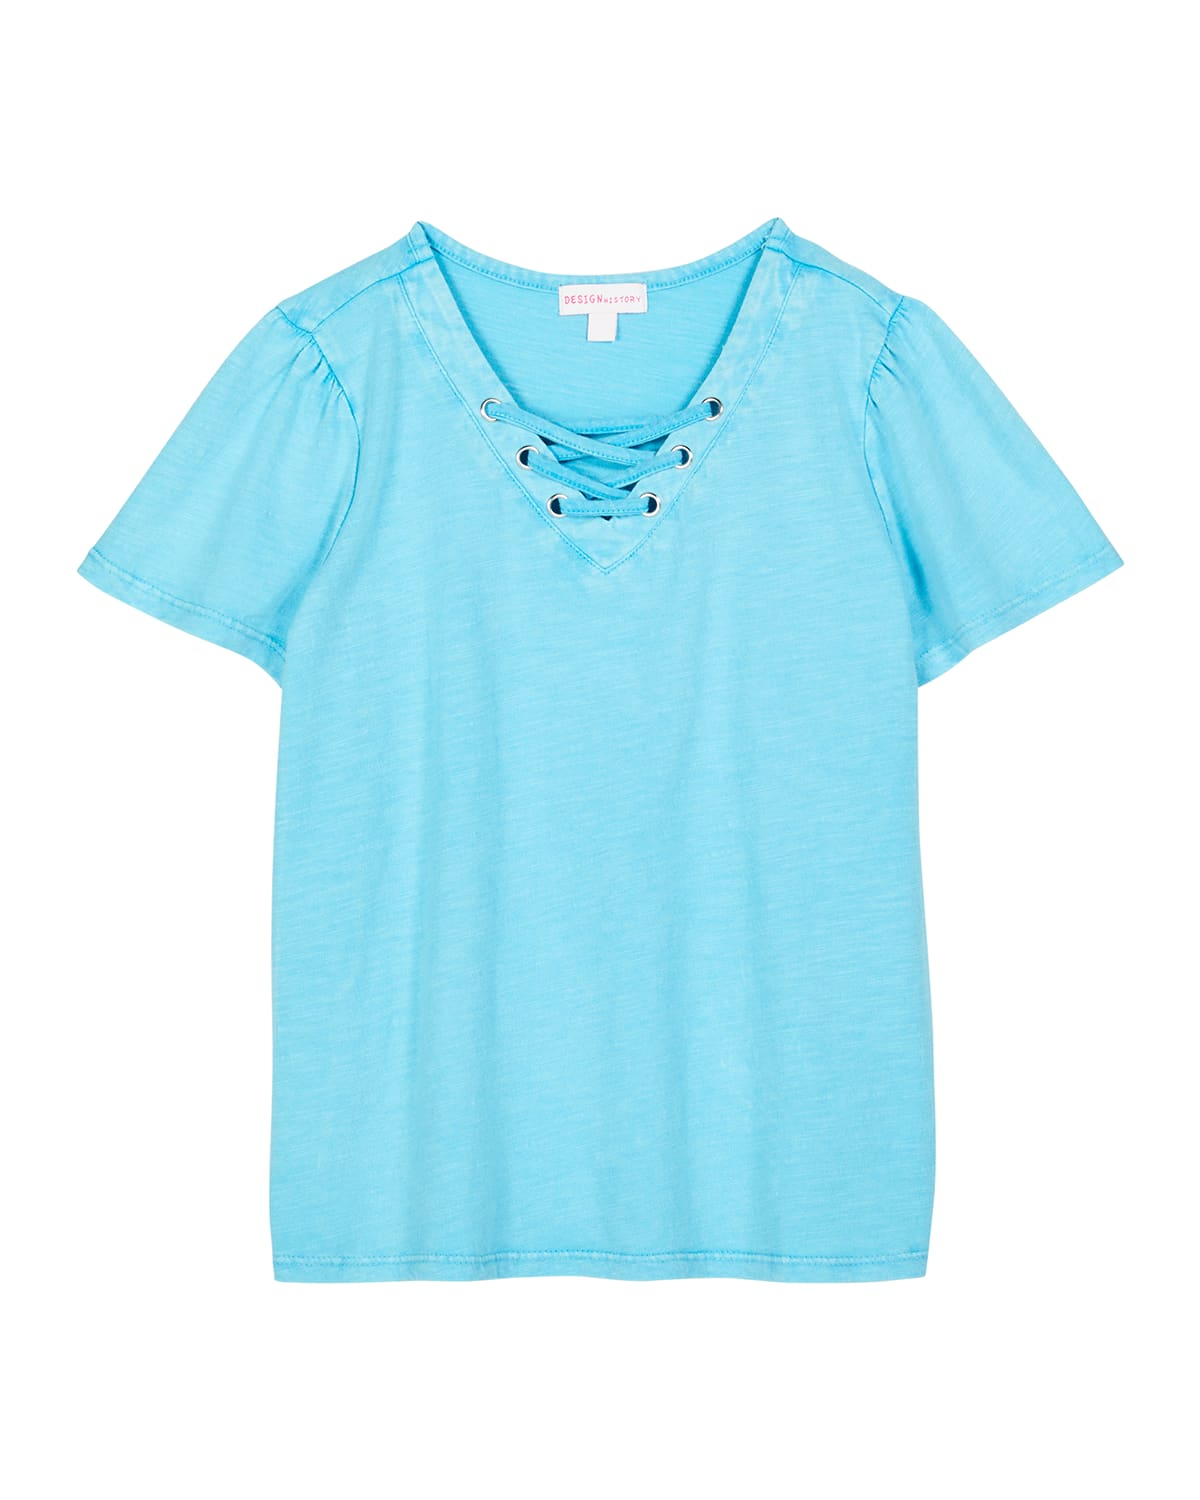 Girl's Short-Sleeve Lace-Up Top